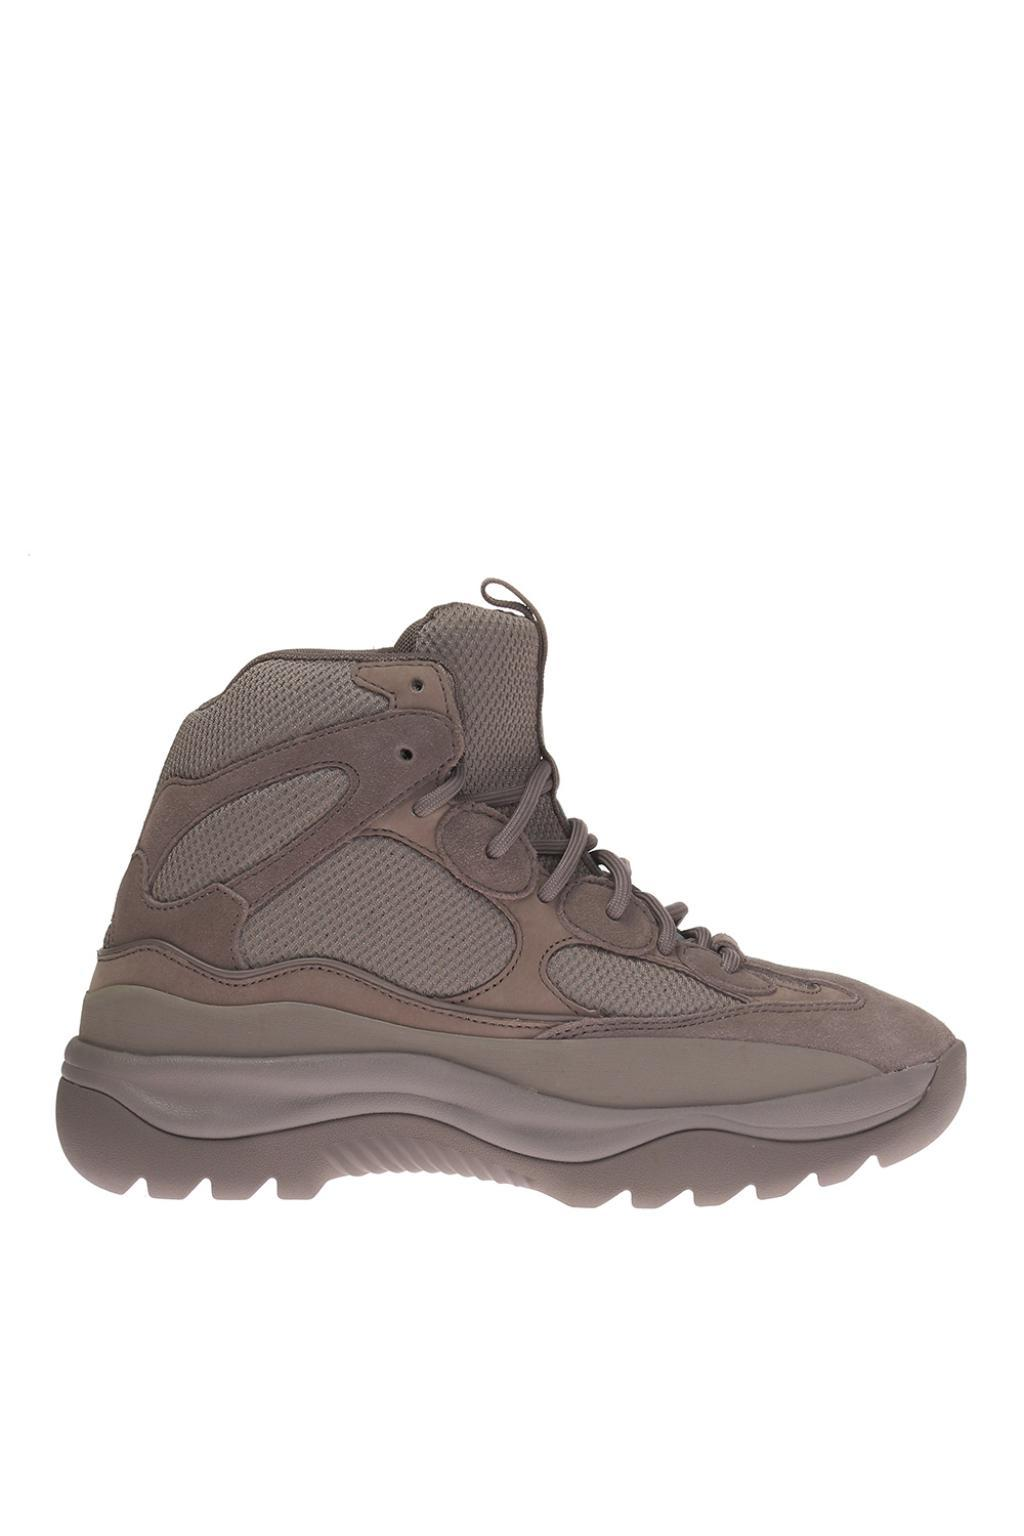 afff3104e Lyst - Yeezy High-top Sneakers in Gray for Men